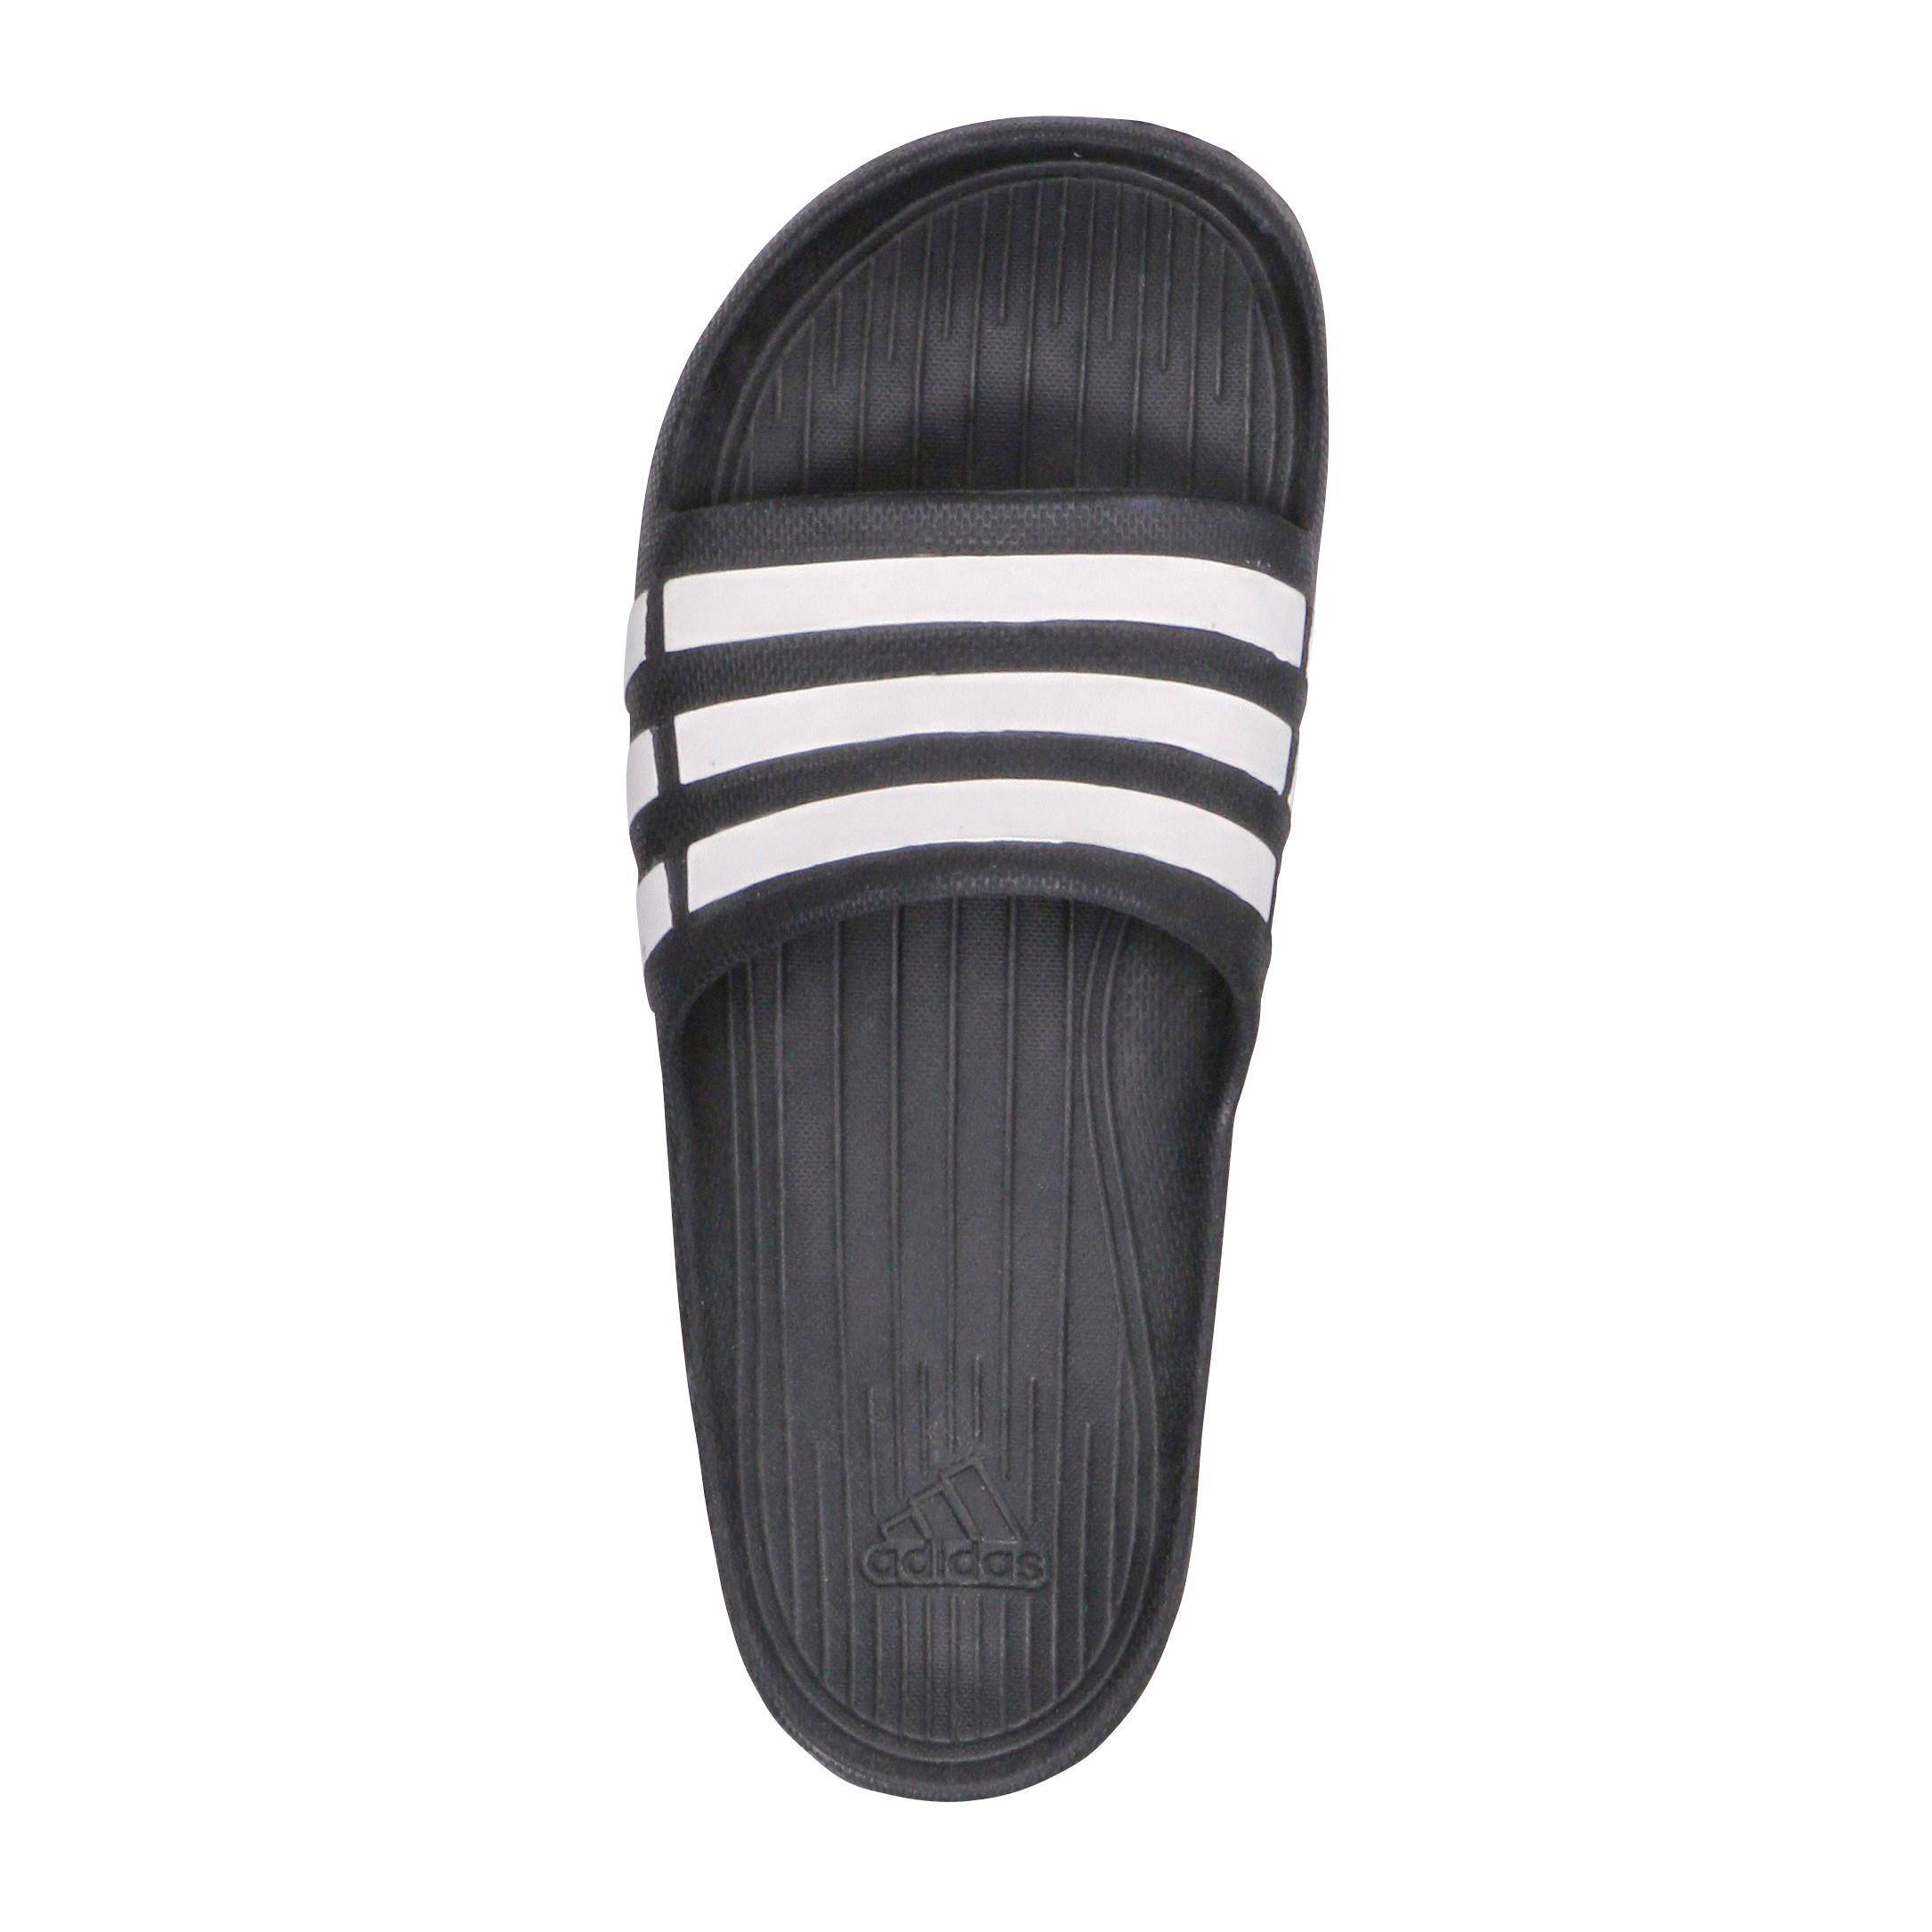 on sale a8715 7213c adidas performance Duramo Slide badslippers zwart  wehkamp